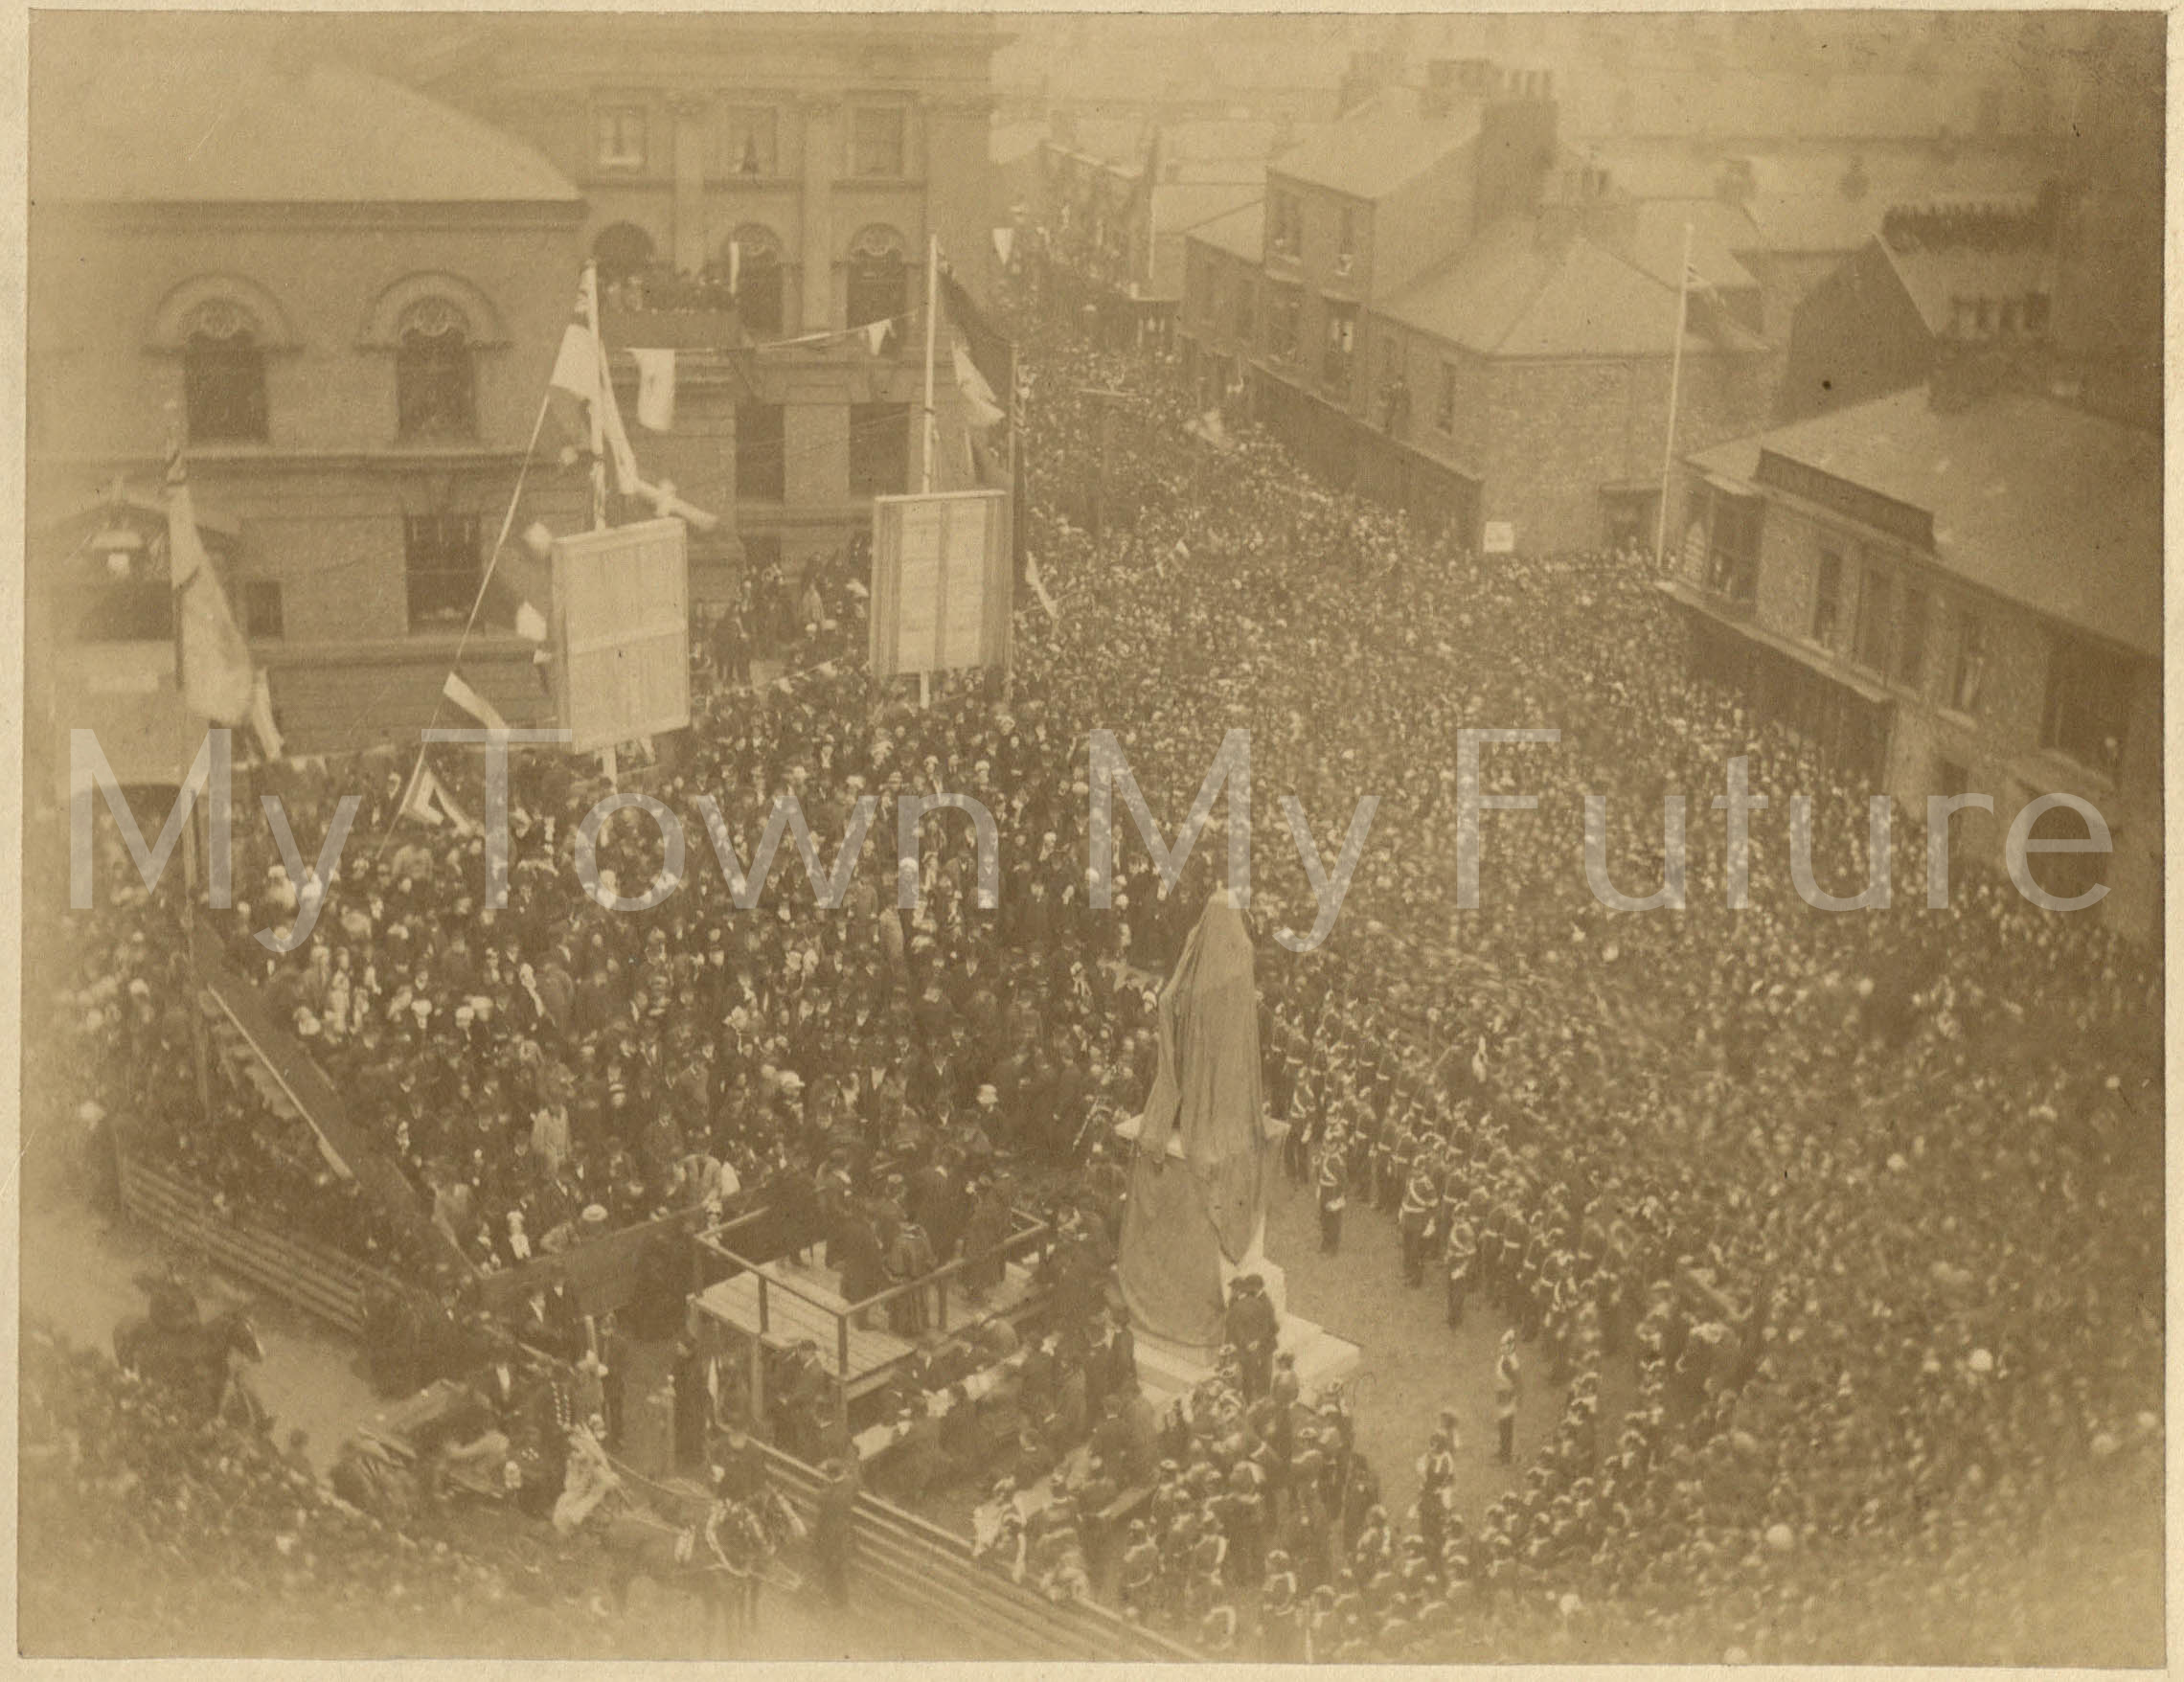 HWF Bolckow's Statue Unveiling, 6 October 1881, Middlesbrough Public Libraries